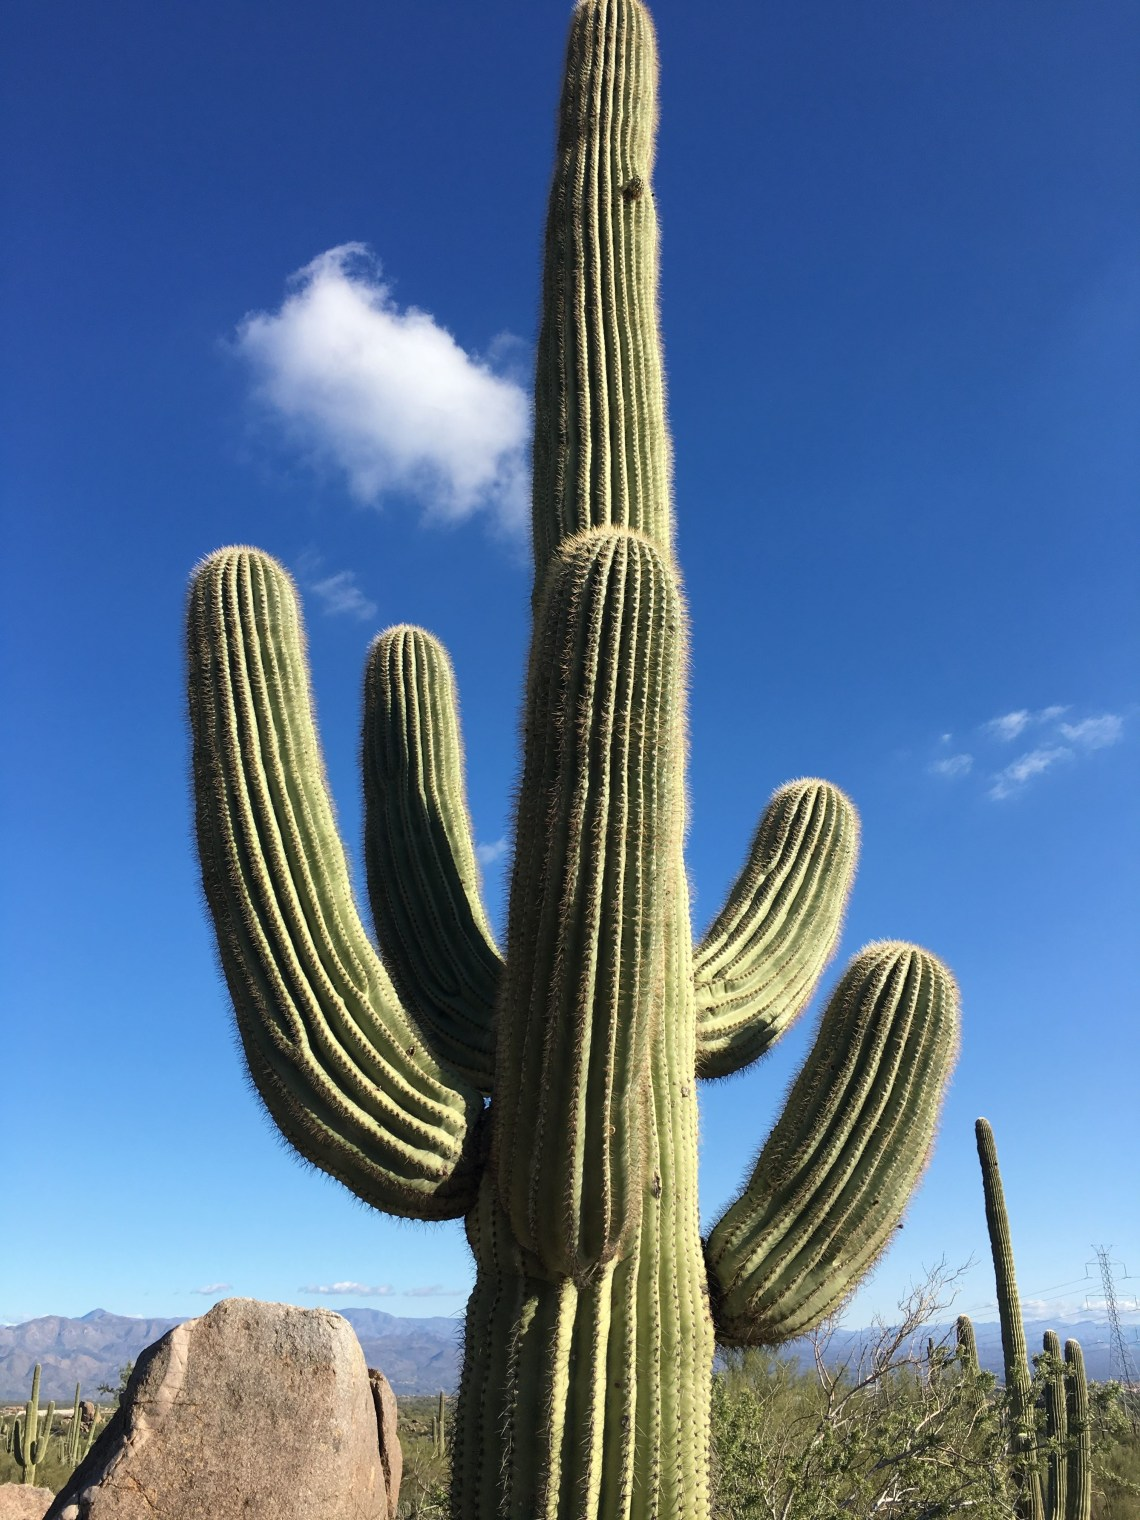 large saguaro cactus against backdrop of blue sky